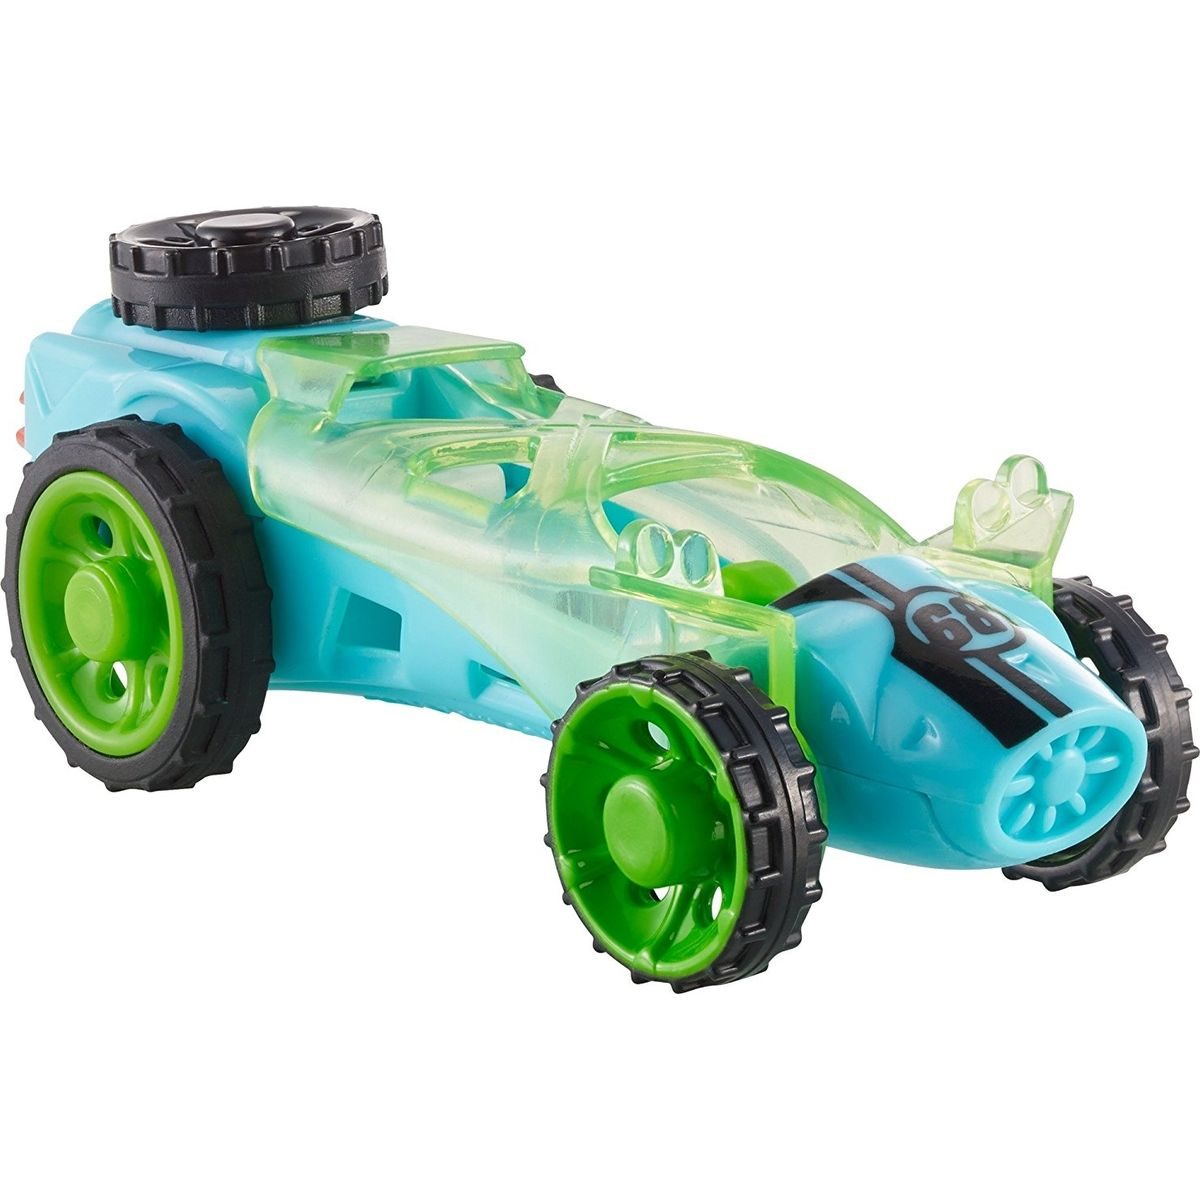 Hot Wheels Speed Winders auto Rubber Burner